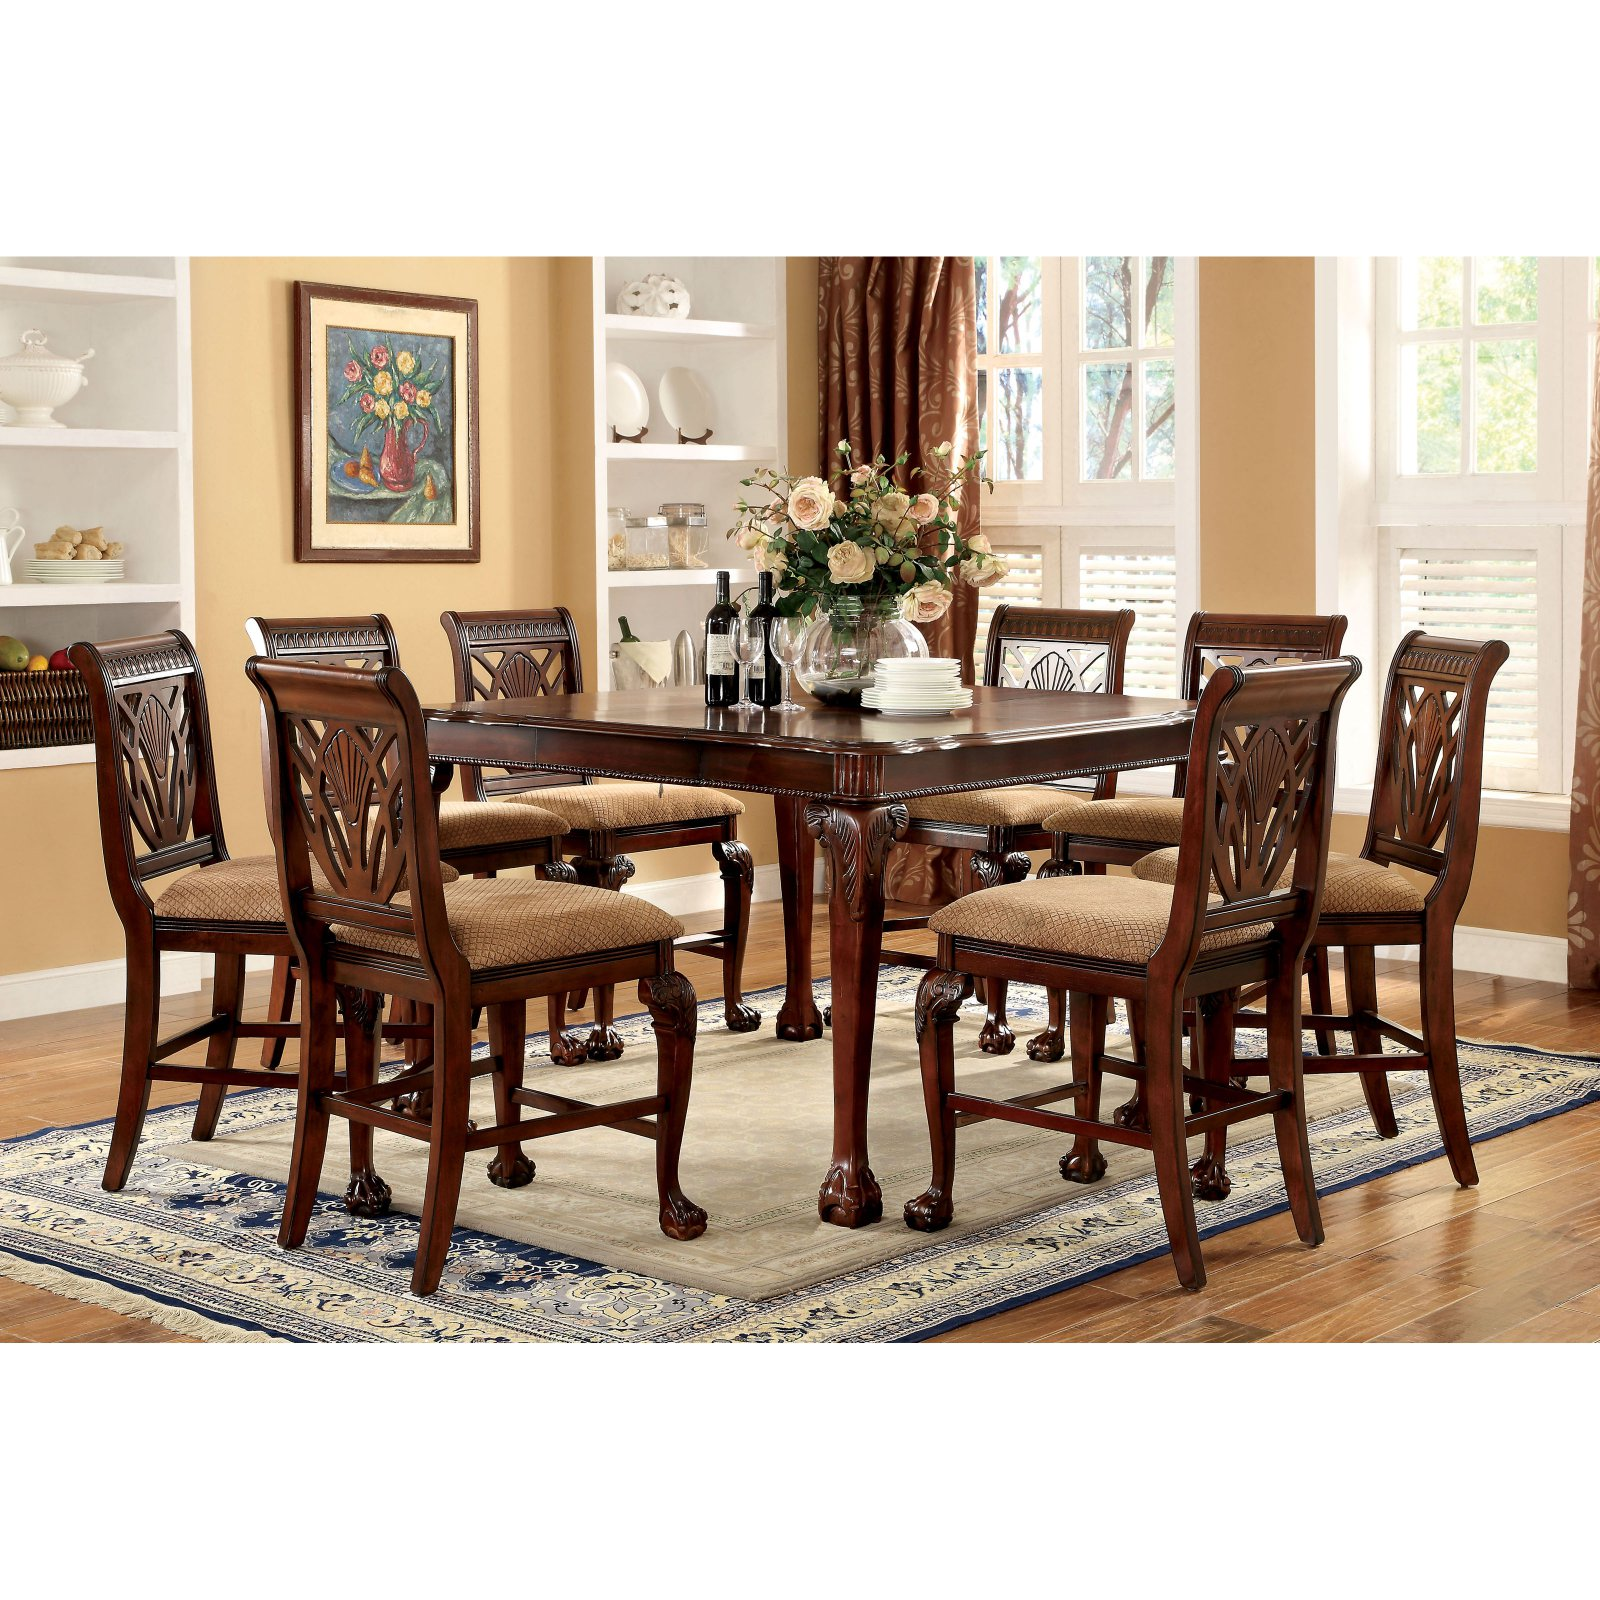 Classic Table Shapes Furniture Of America Harsburough Classic Counter Height 9 Piece Dining Table Set